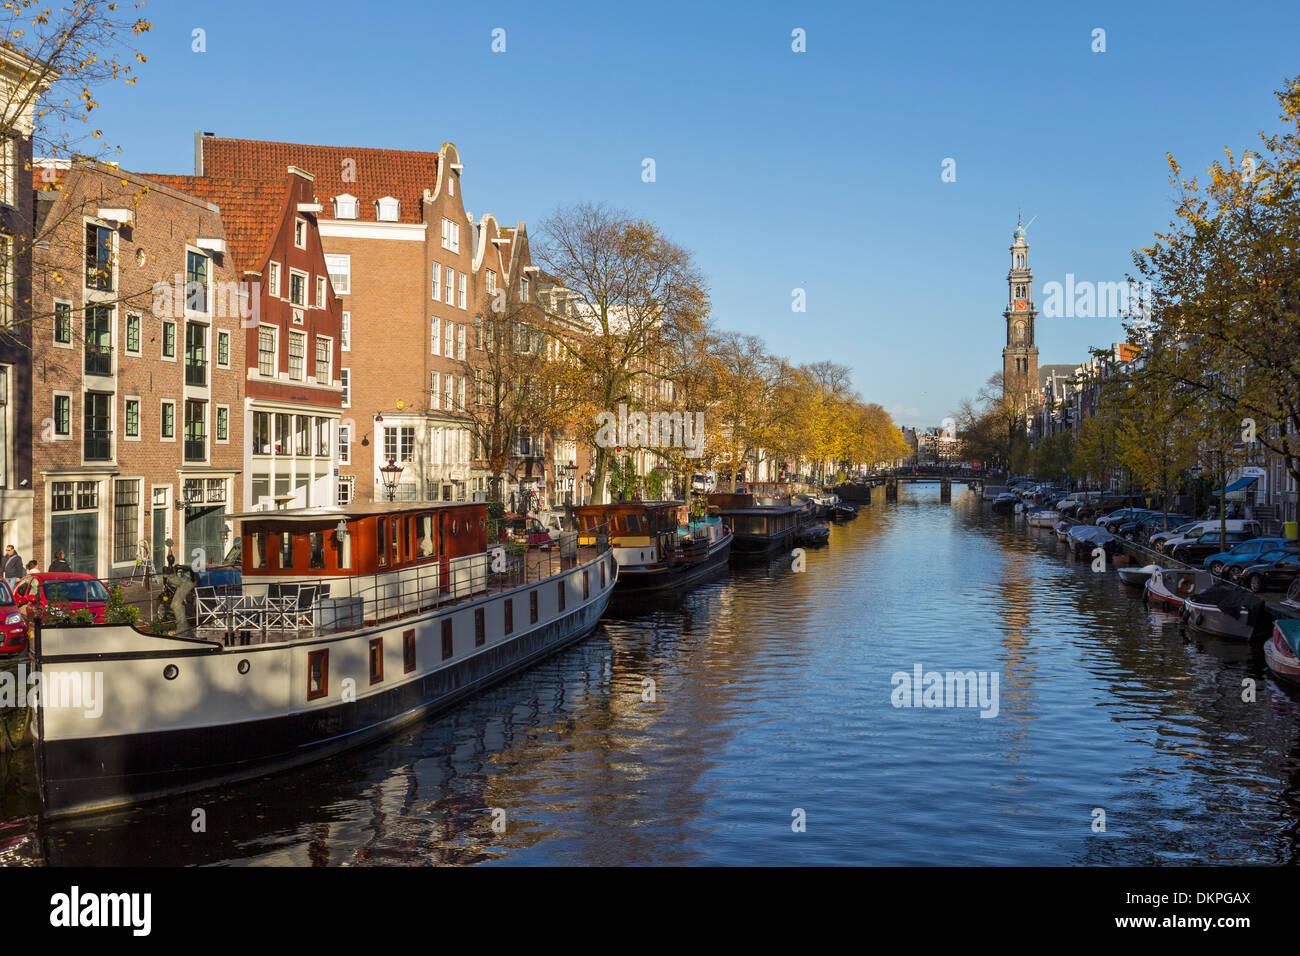 AMSTERDAM  NETHERLANDS THE PRINSENGRACHT CANAL WITH HOUSEBOATS AND THE WESTERKERK TOWER - Stock Image